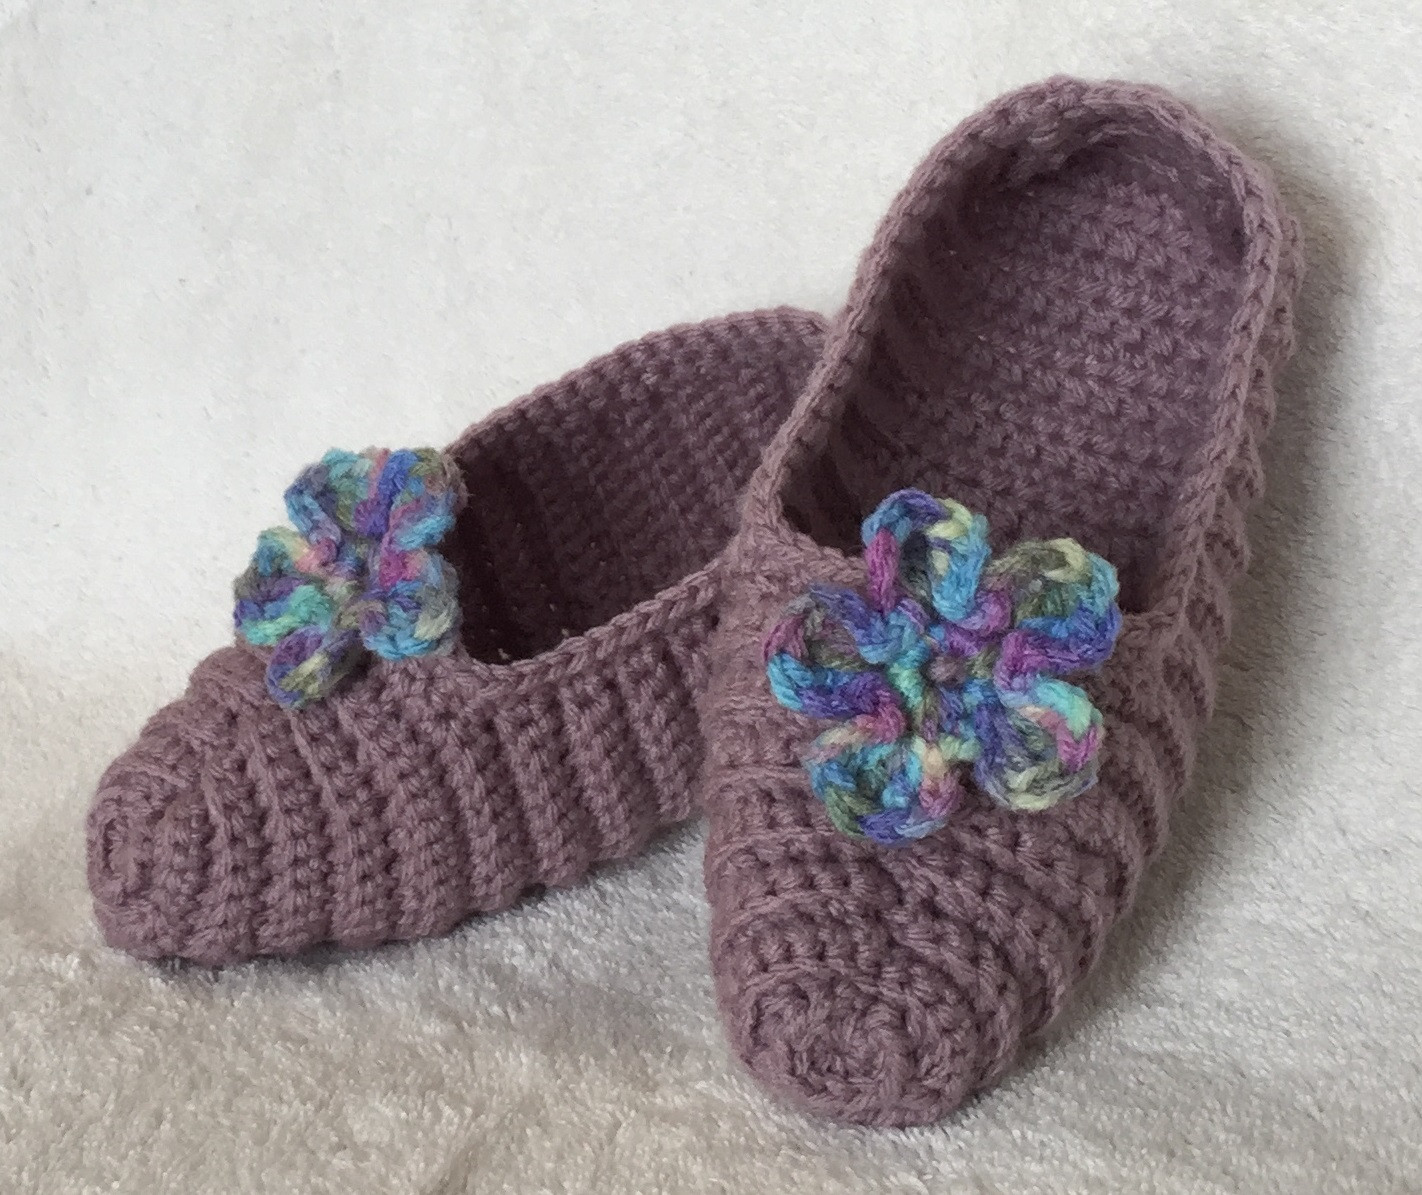 Crochet Slipper socks Luxury Kweenbee and Me Crocheted Ribbed Slippers Of Charming 47 Photos Crochet Slipper socks